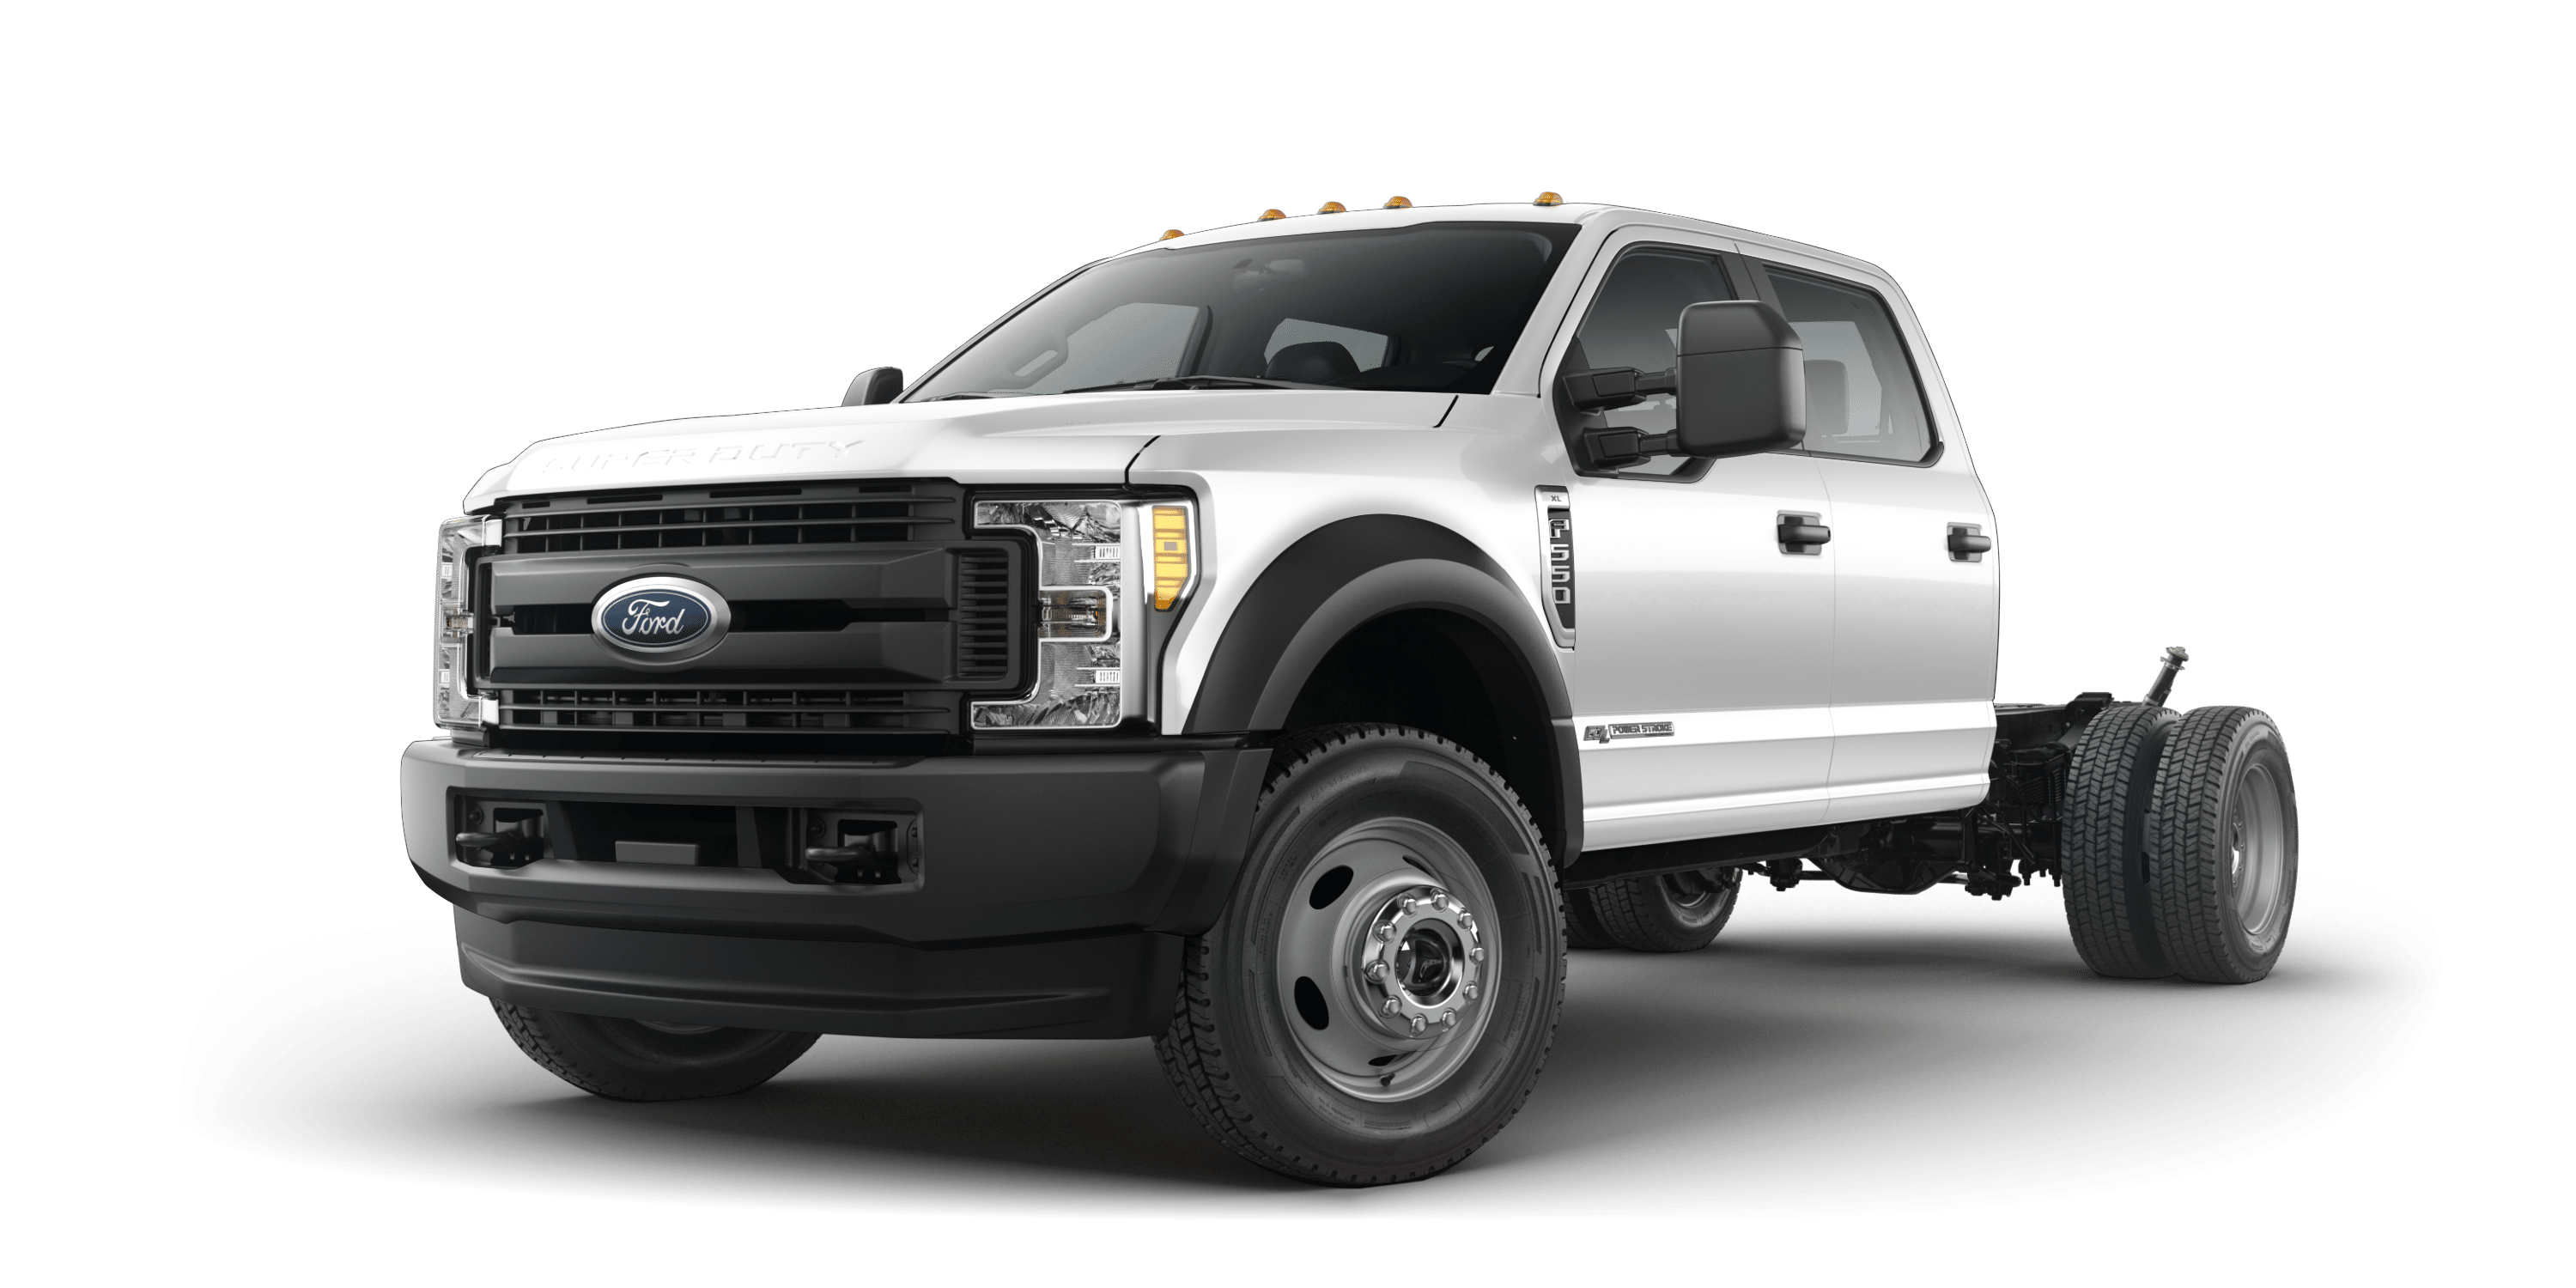 2017 Ford Super Duty F-550 DRW Vehicle Photo in Souderton, PA 18964-1038